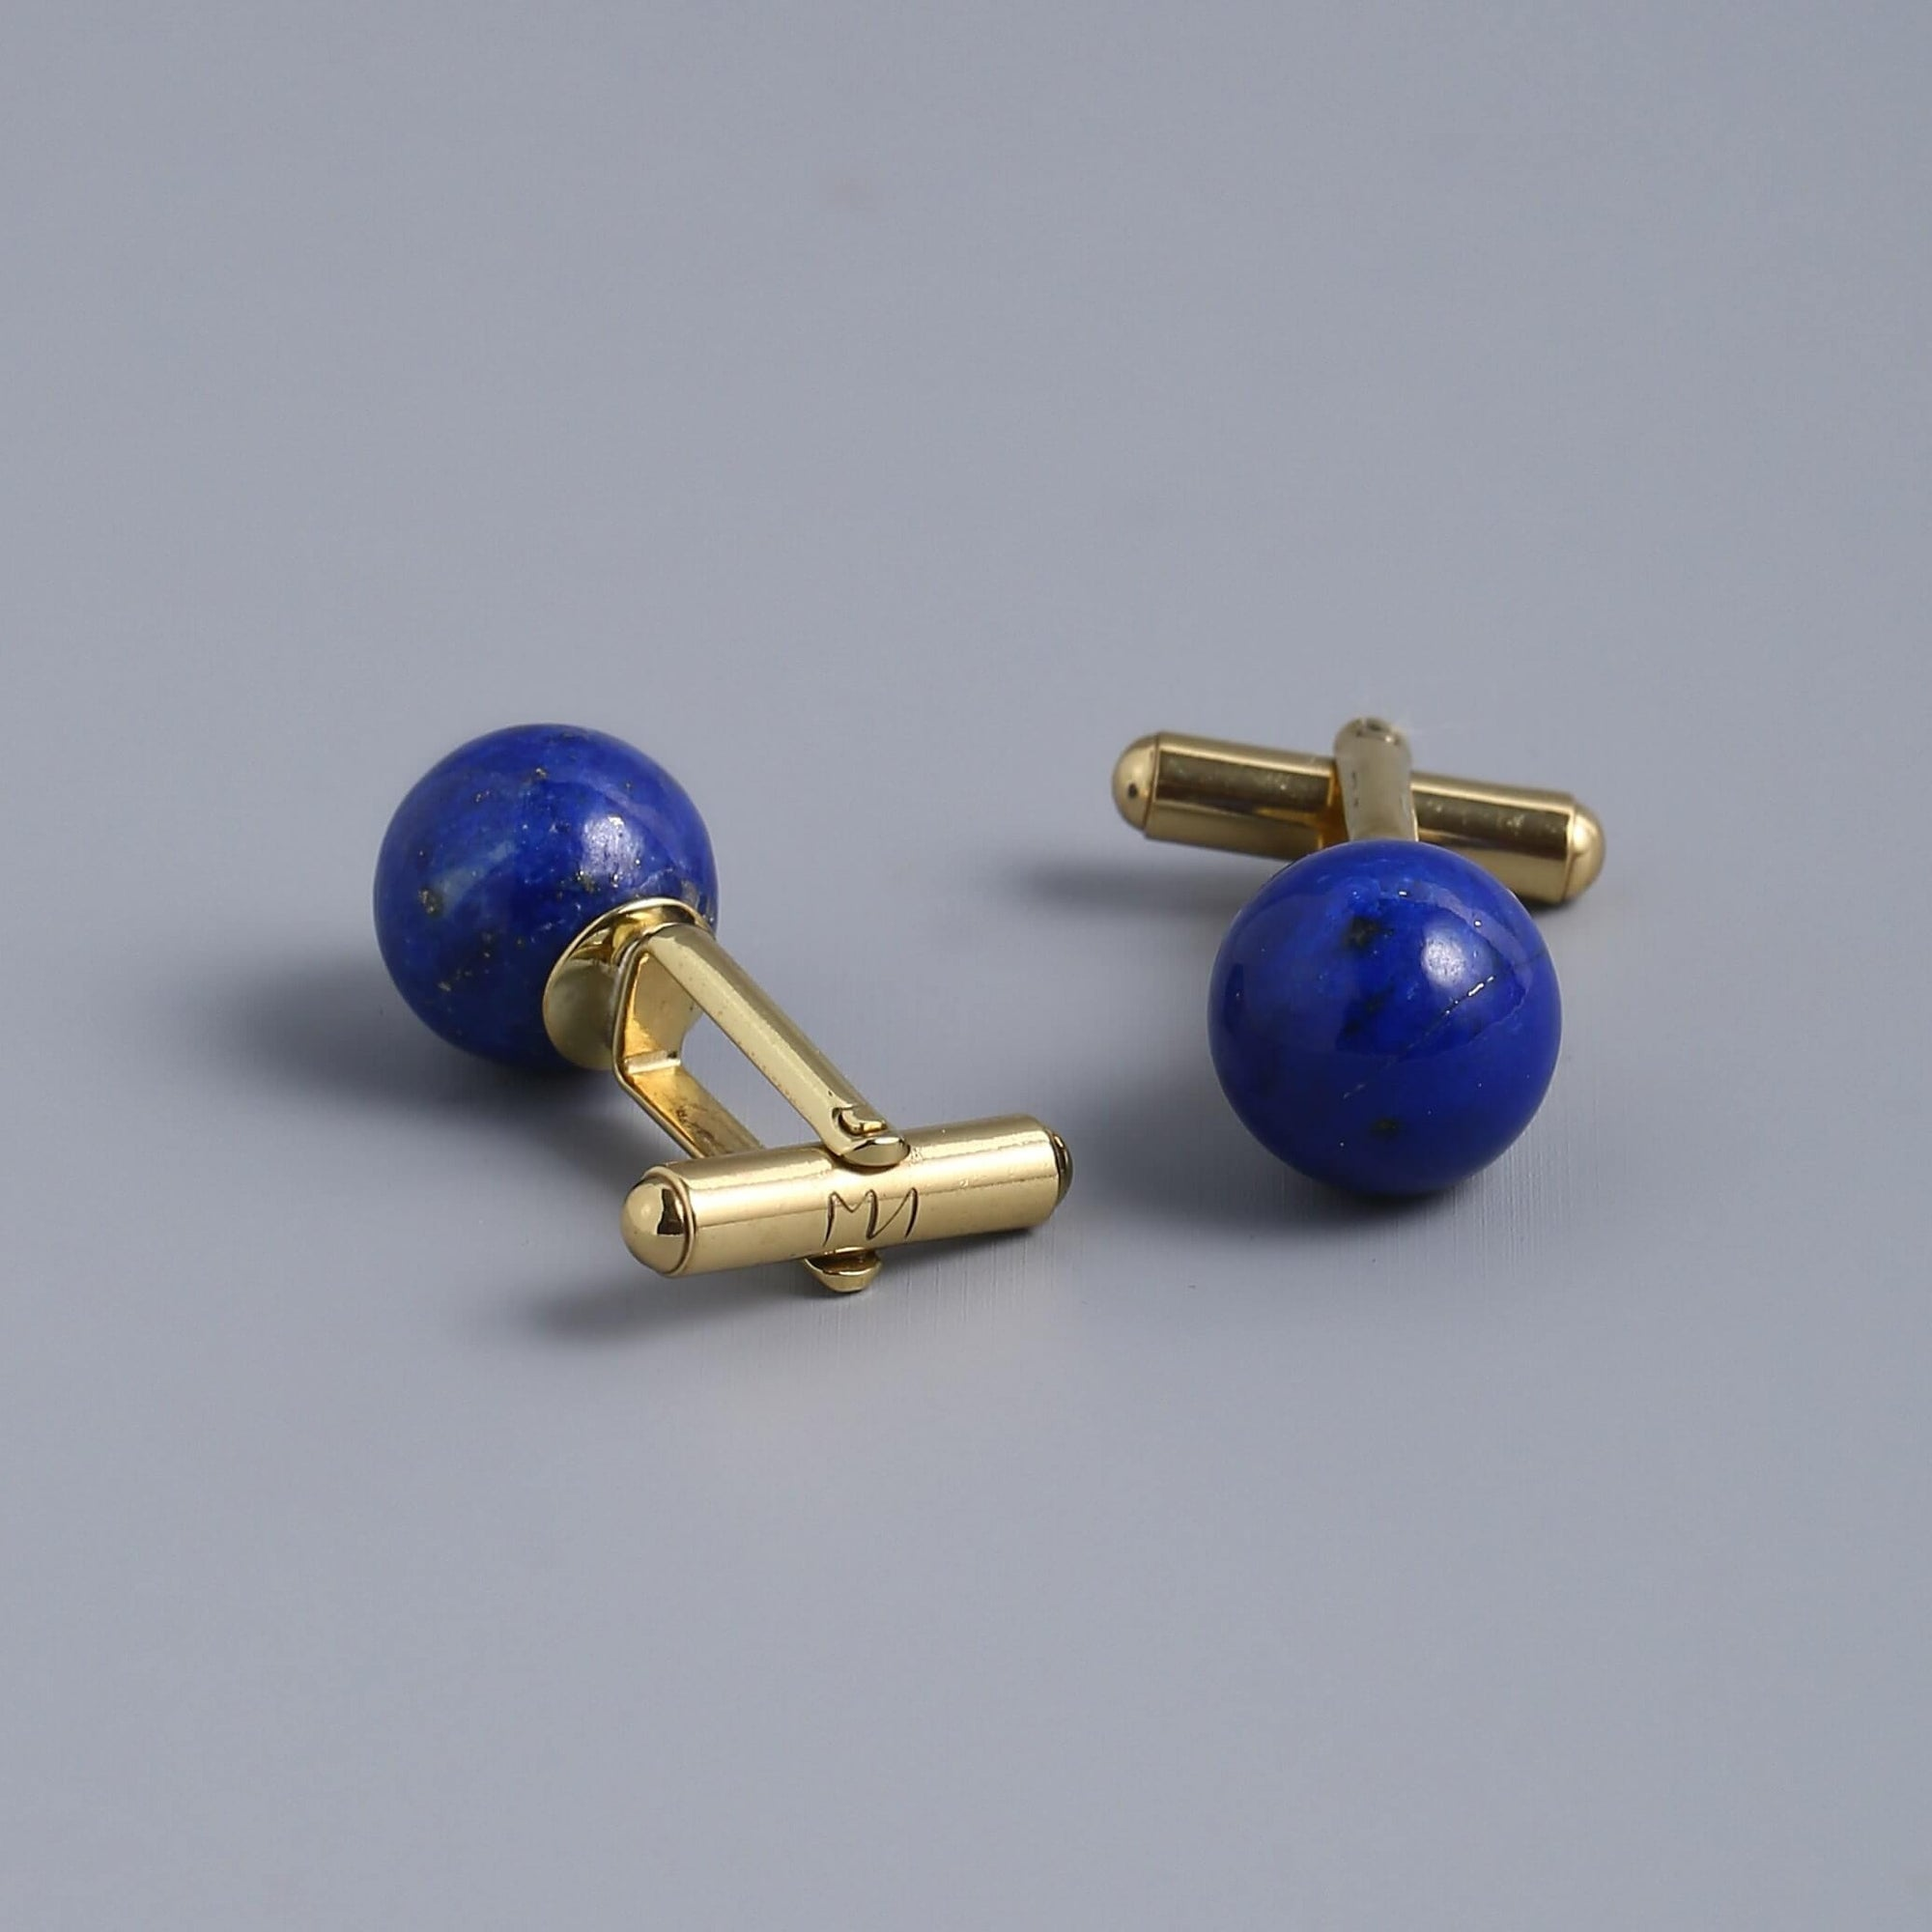 Blue Lapis Lazuli Cufflinks For Men